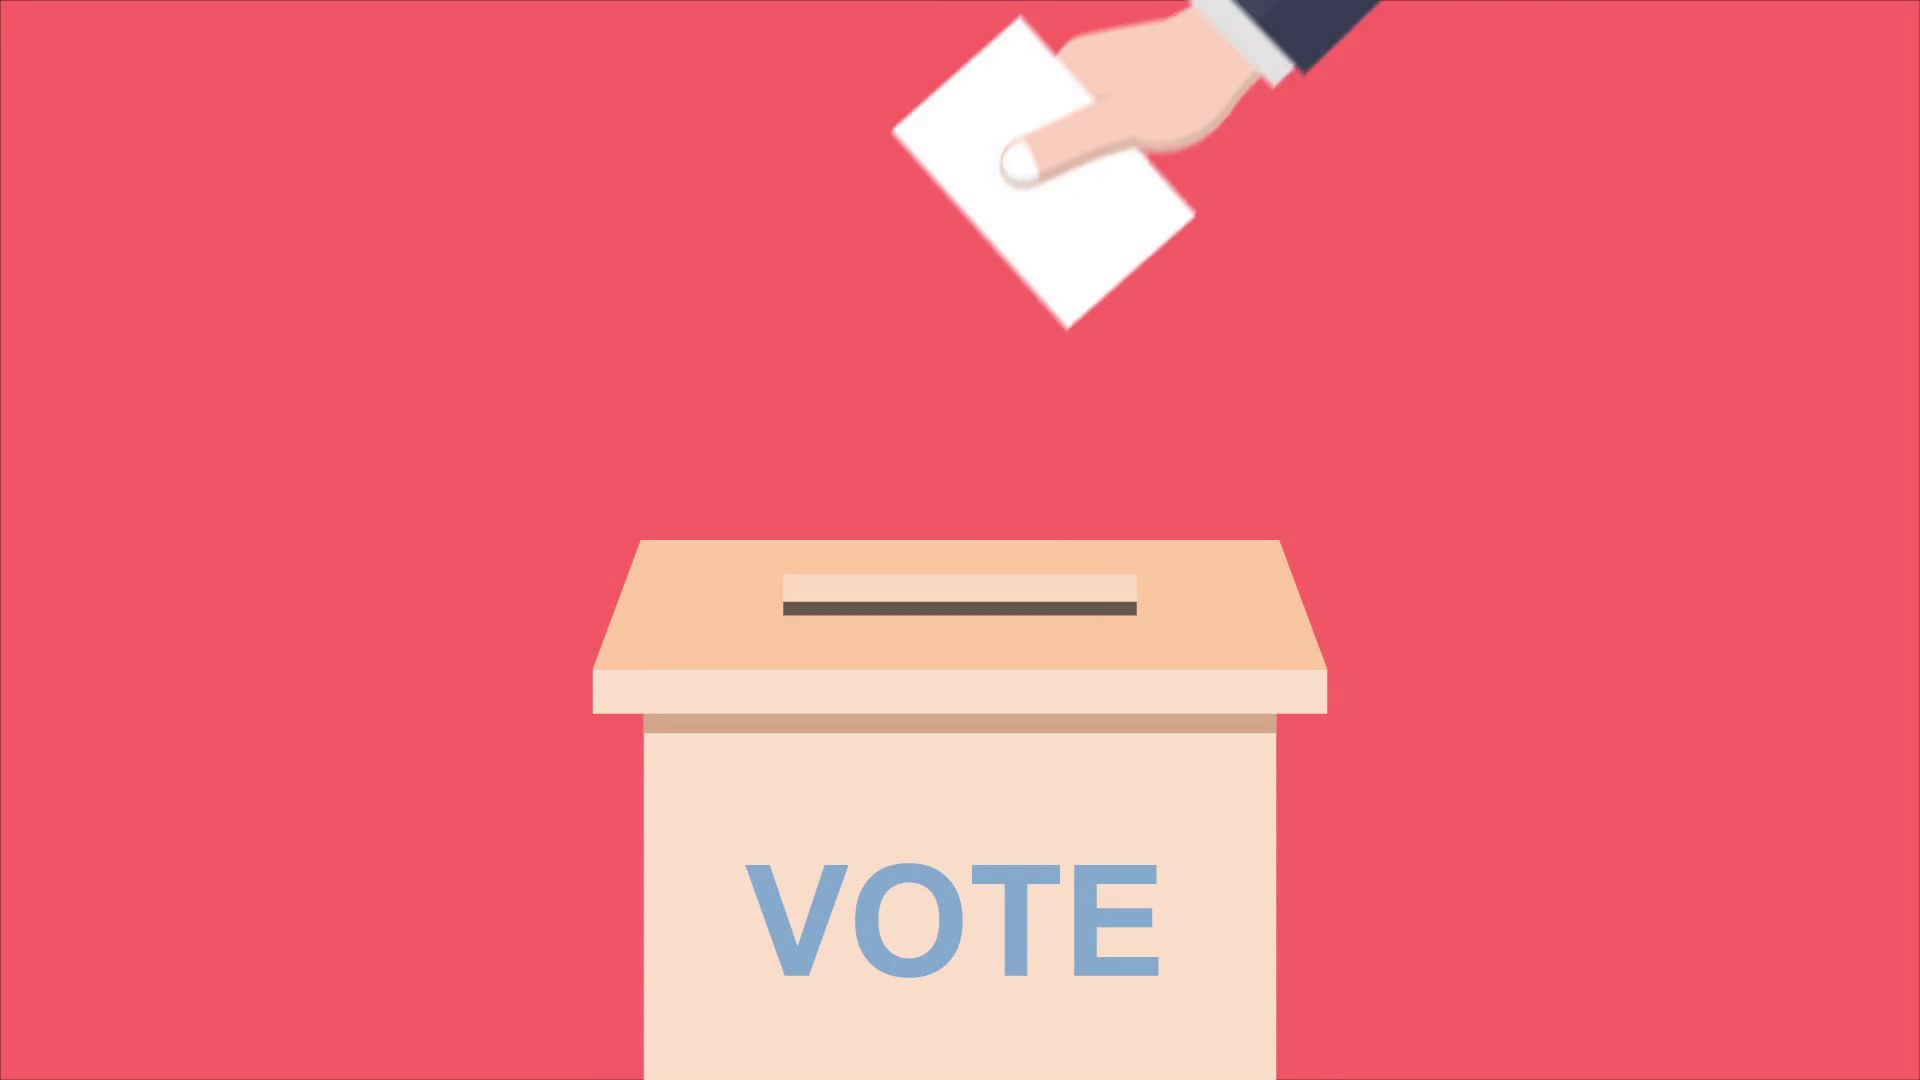 videoblocks-flat-style-animation-of-a-hand-casting-vote-in-the-ballot-box_ha6aboftx_thumbnail-full02